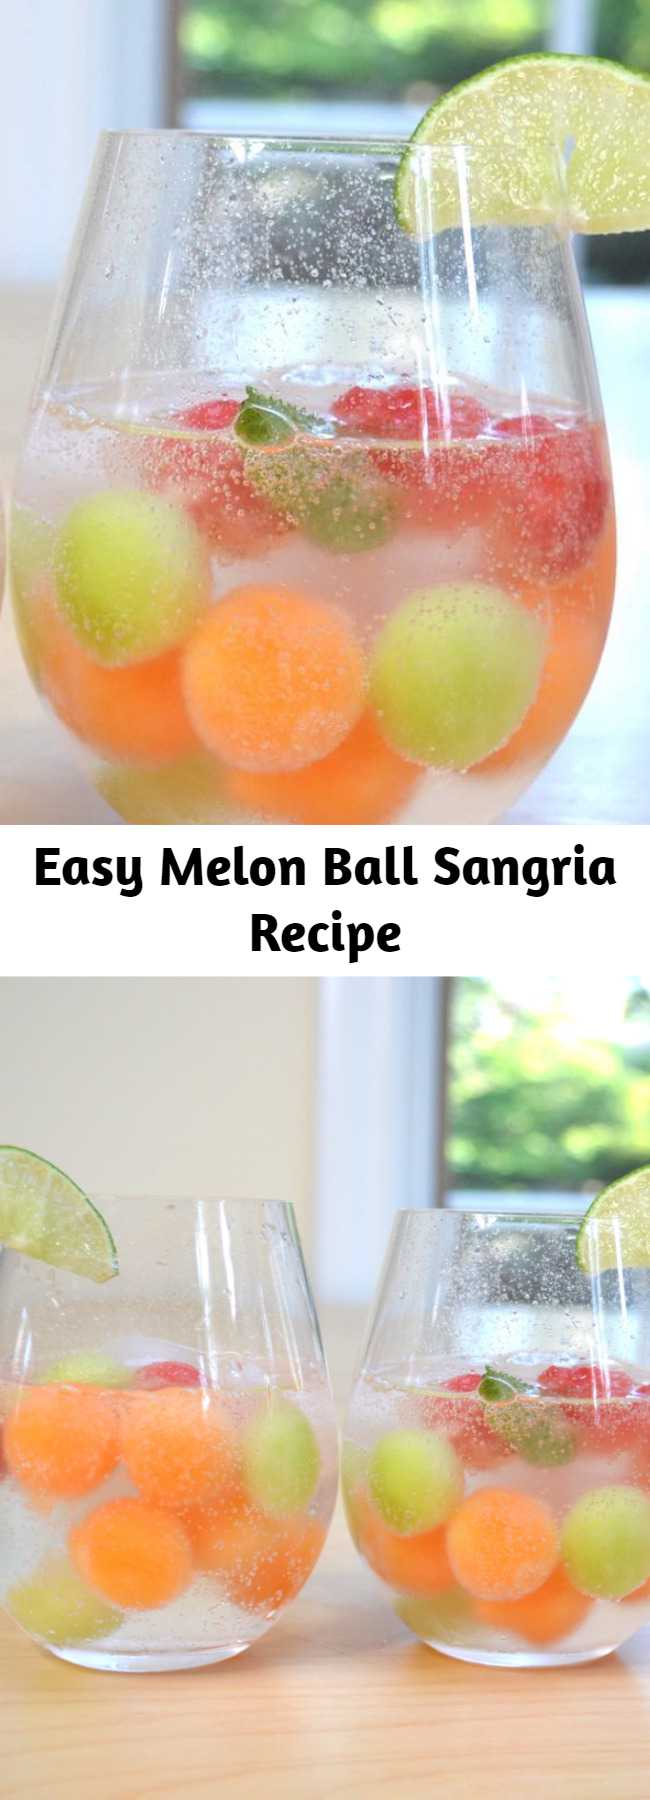 Refreshing and delicious melon ball sangria, the most beautiful sangria recipe! All you need is only a few ingredients: watermelon, cantaloupe and honeydew melons, moscato wine, sugar, lime, and sparkling water.